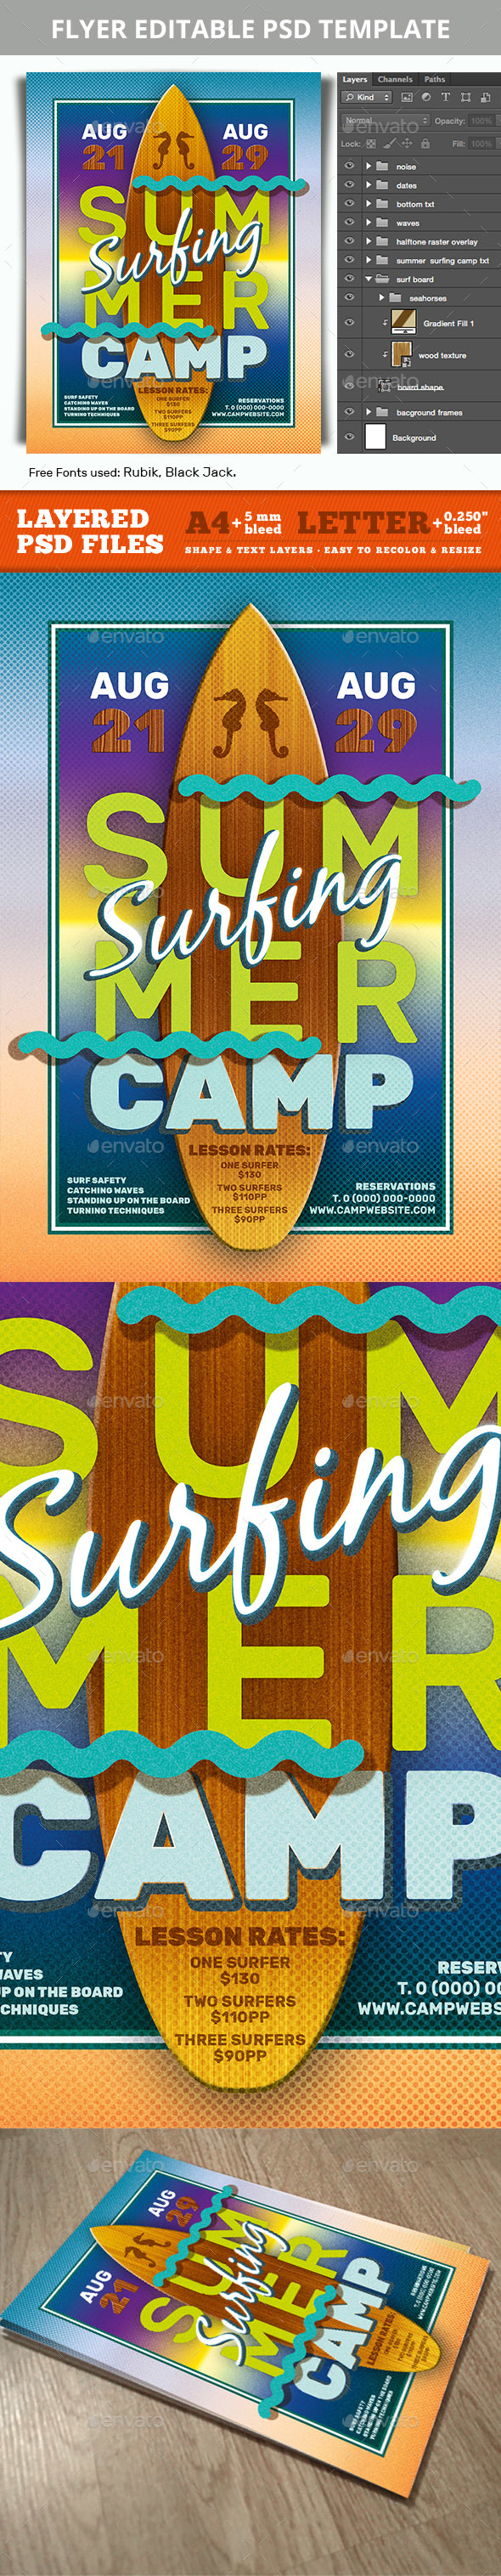 Summer Surfing Camp Editable PSD Flyer